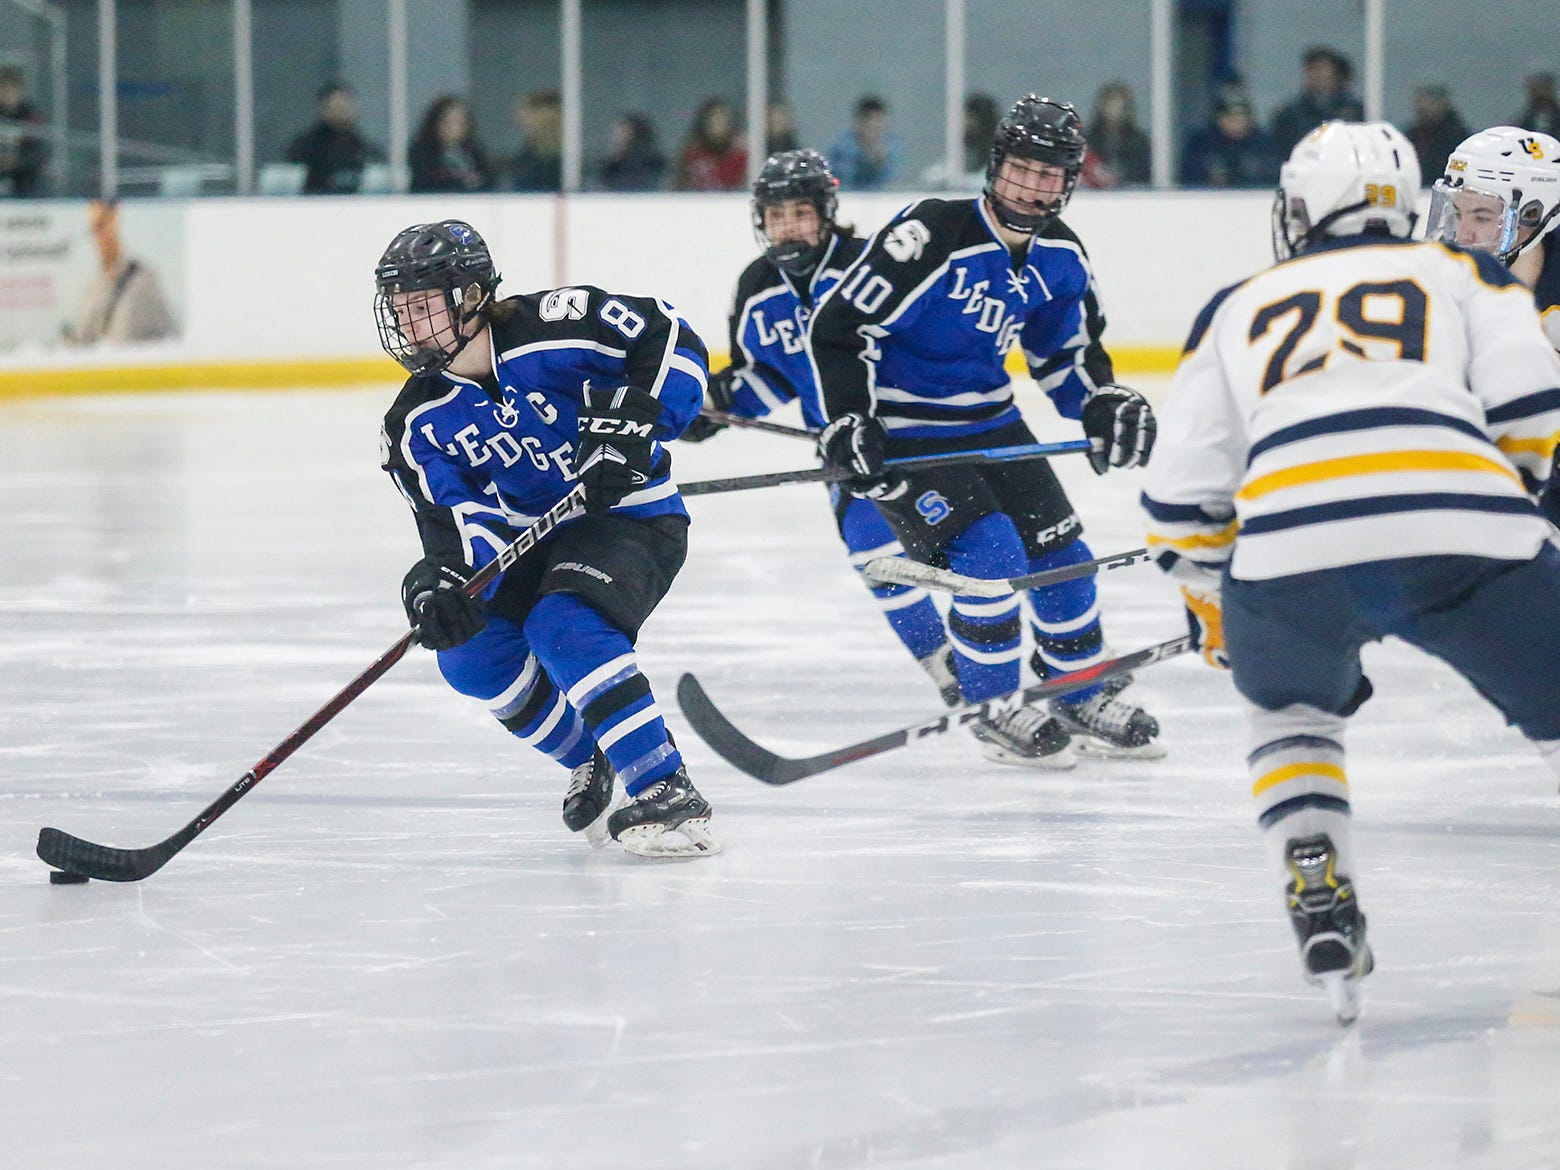 St. Mary's Springs boys co-op hockey's Zach Welsch (8) moves the puck down the ice against University School of Milwaukee Friday, February 22, 2019 during their WIAA sectional final game in Fond du Lac. University School won the game 6-1 and will advance to state. Doug Raflik/USA TODAY NETWORK-Wisconsin